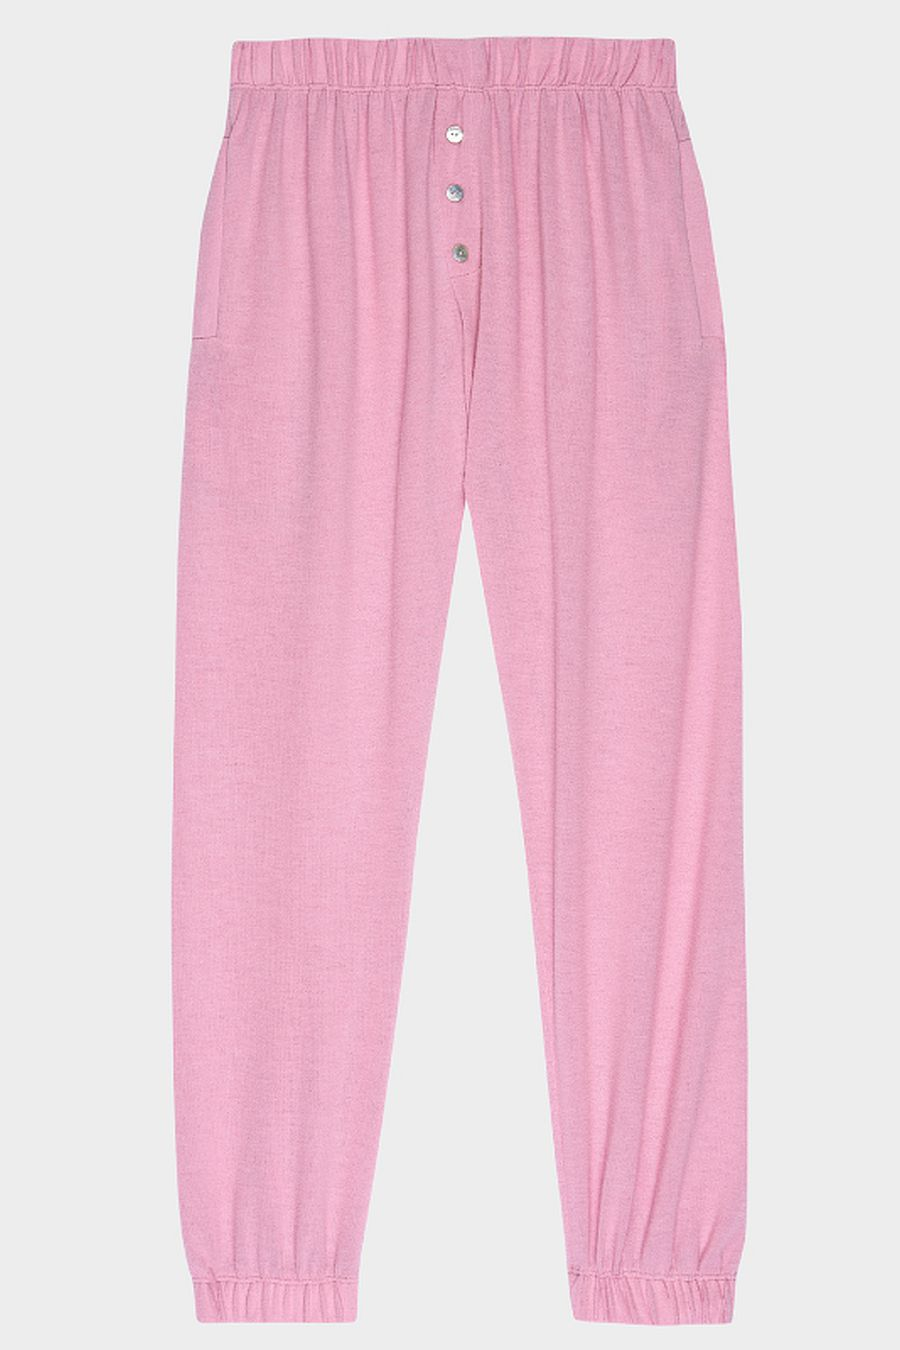 DONNI. Sweater Henley Sweatpant - Rose